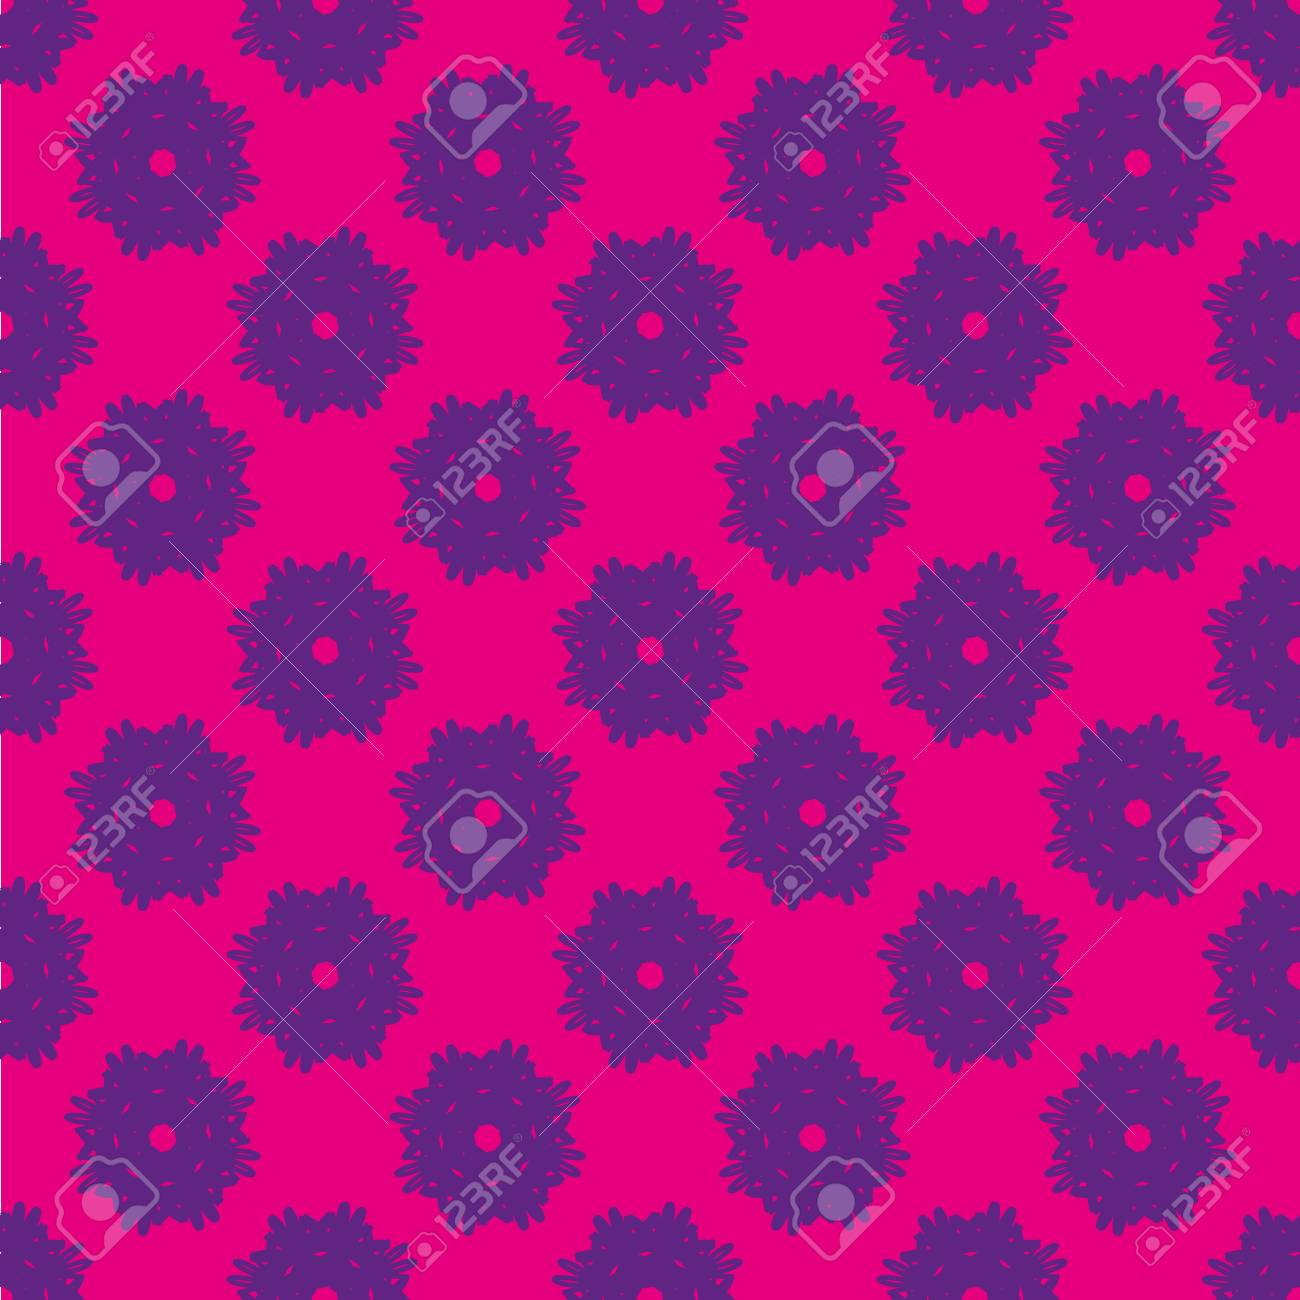 Purple flower abstract seamless pattern fashion graphic background purple flower abstract seamless pattern fashion graphic background design modern spring and summer altavistaventures Choice Image